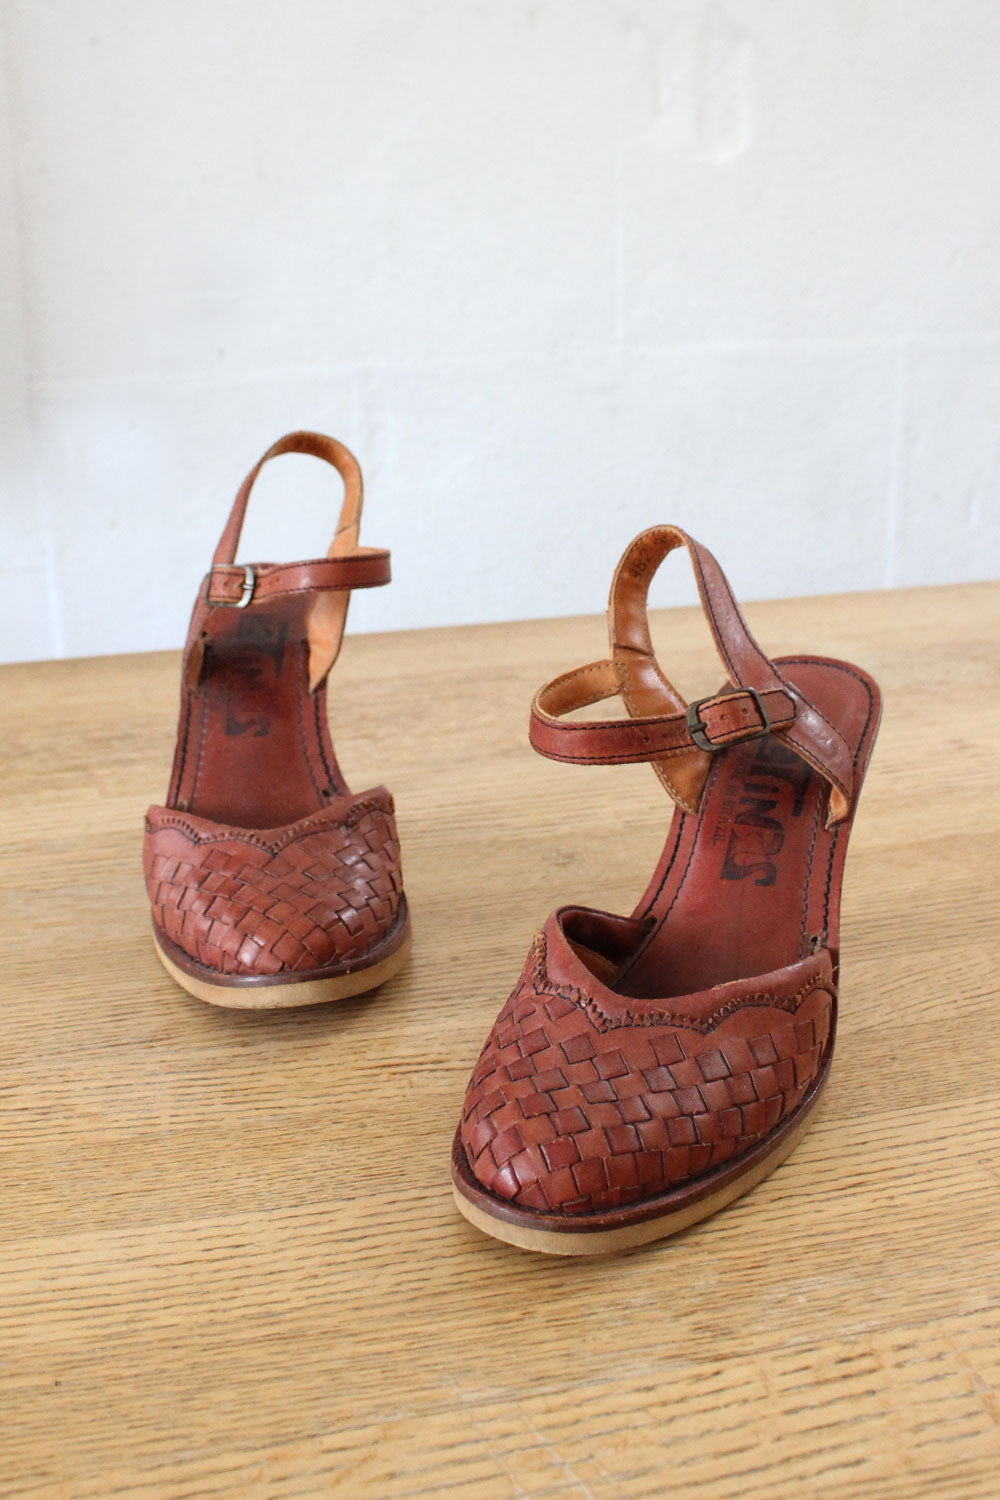 Latinas Redwood Leather Heels 7 1/2